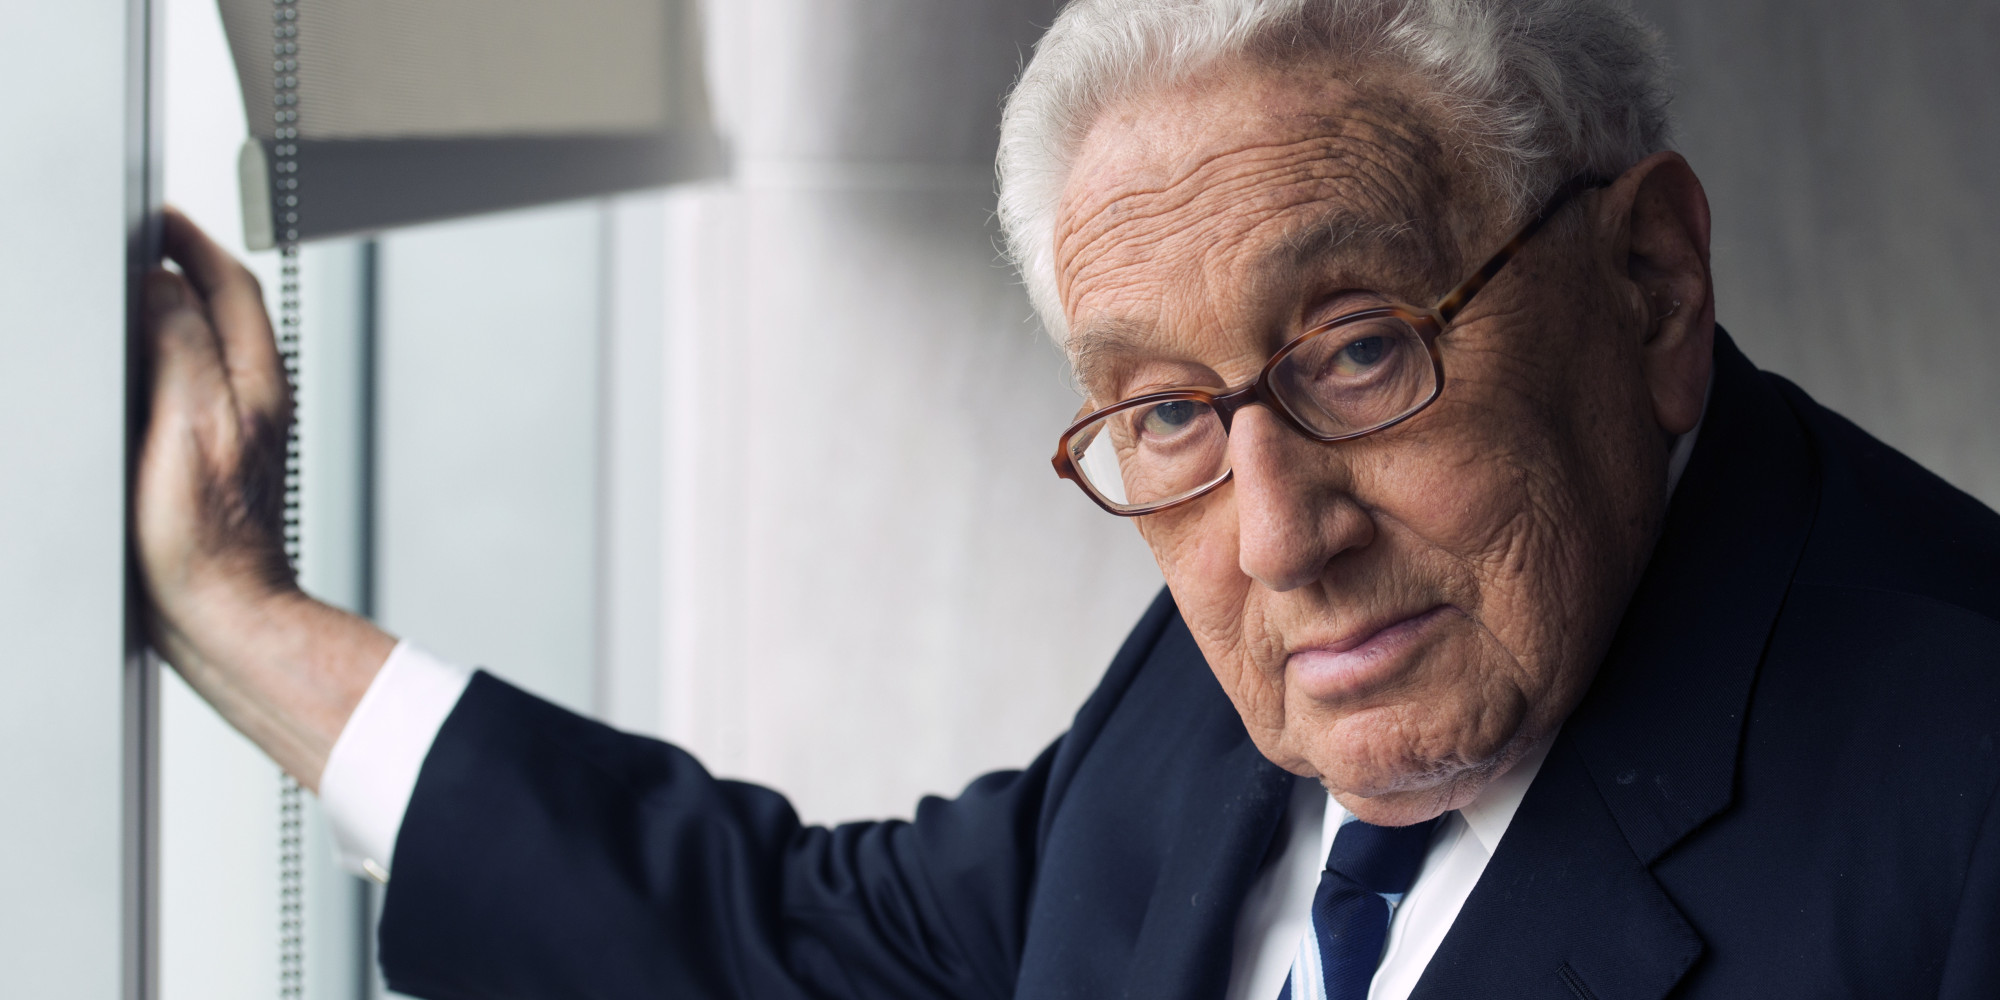 WASHINGTON, DC- SEPTEMBER 03: Henry A. Kissinger, author of his new book World Order, photographed in his office in Washington, D.C. on September 03, 2014.   (Photo by Marvin Joseph/The Washington Post via Getty Images)